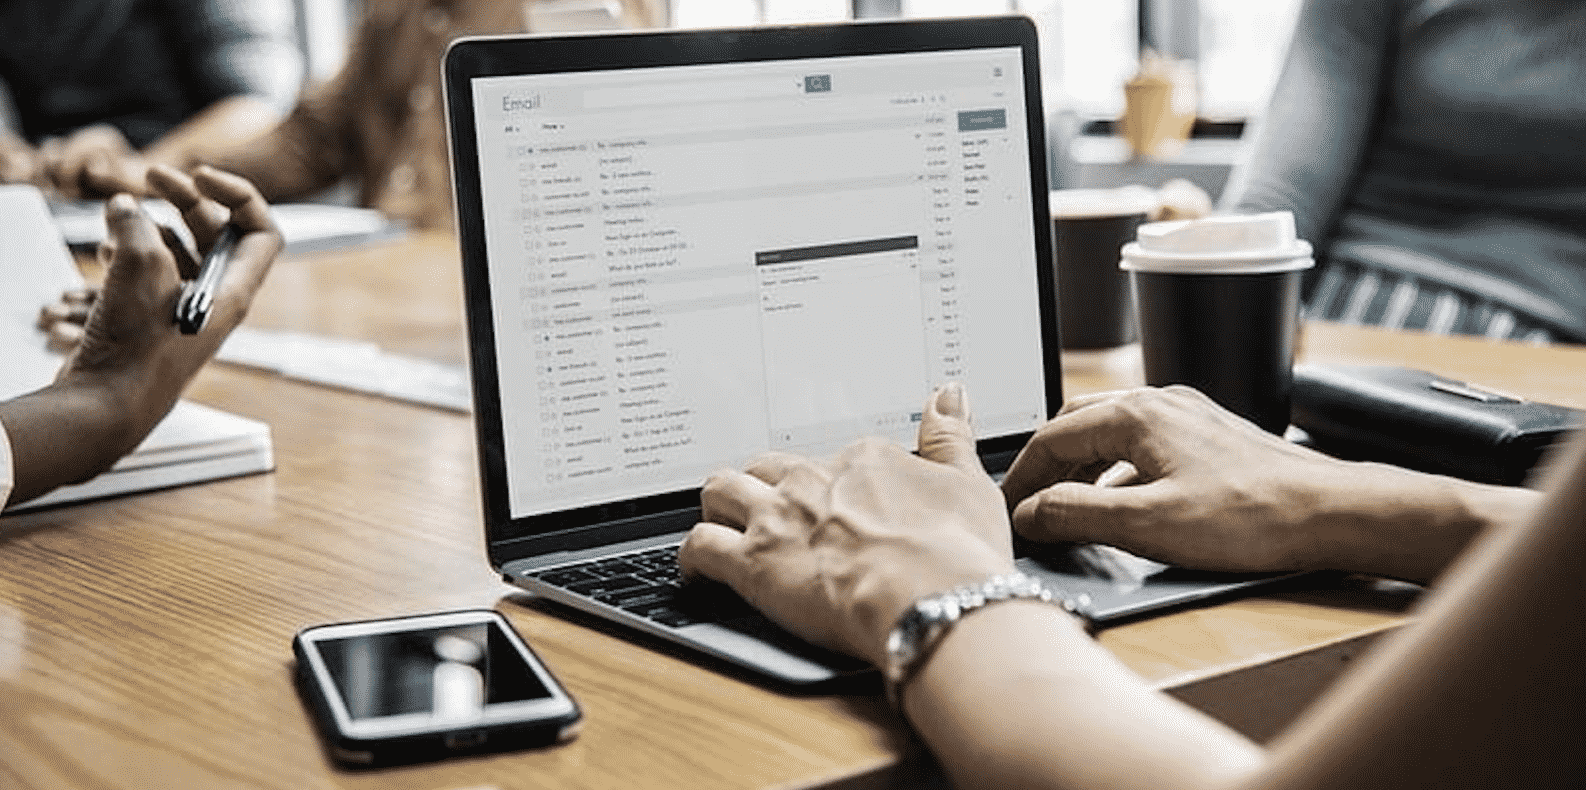 5 Of the Best Email Marketing Tools, You Can Use In 2020